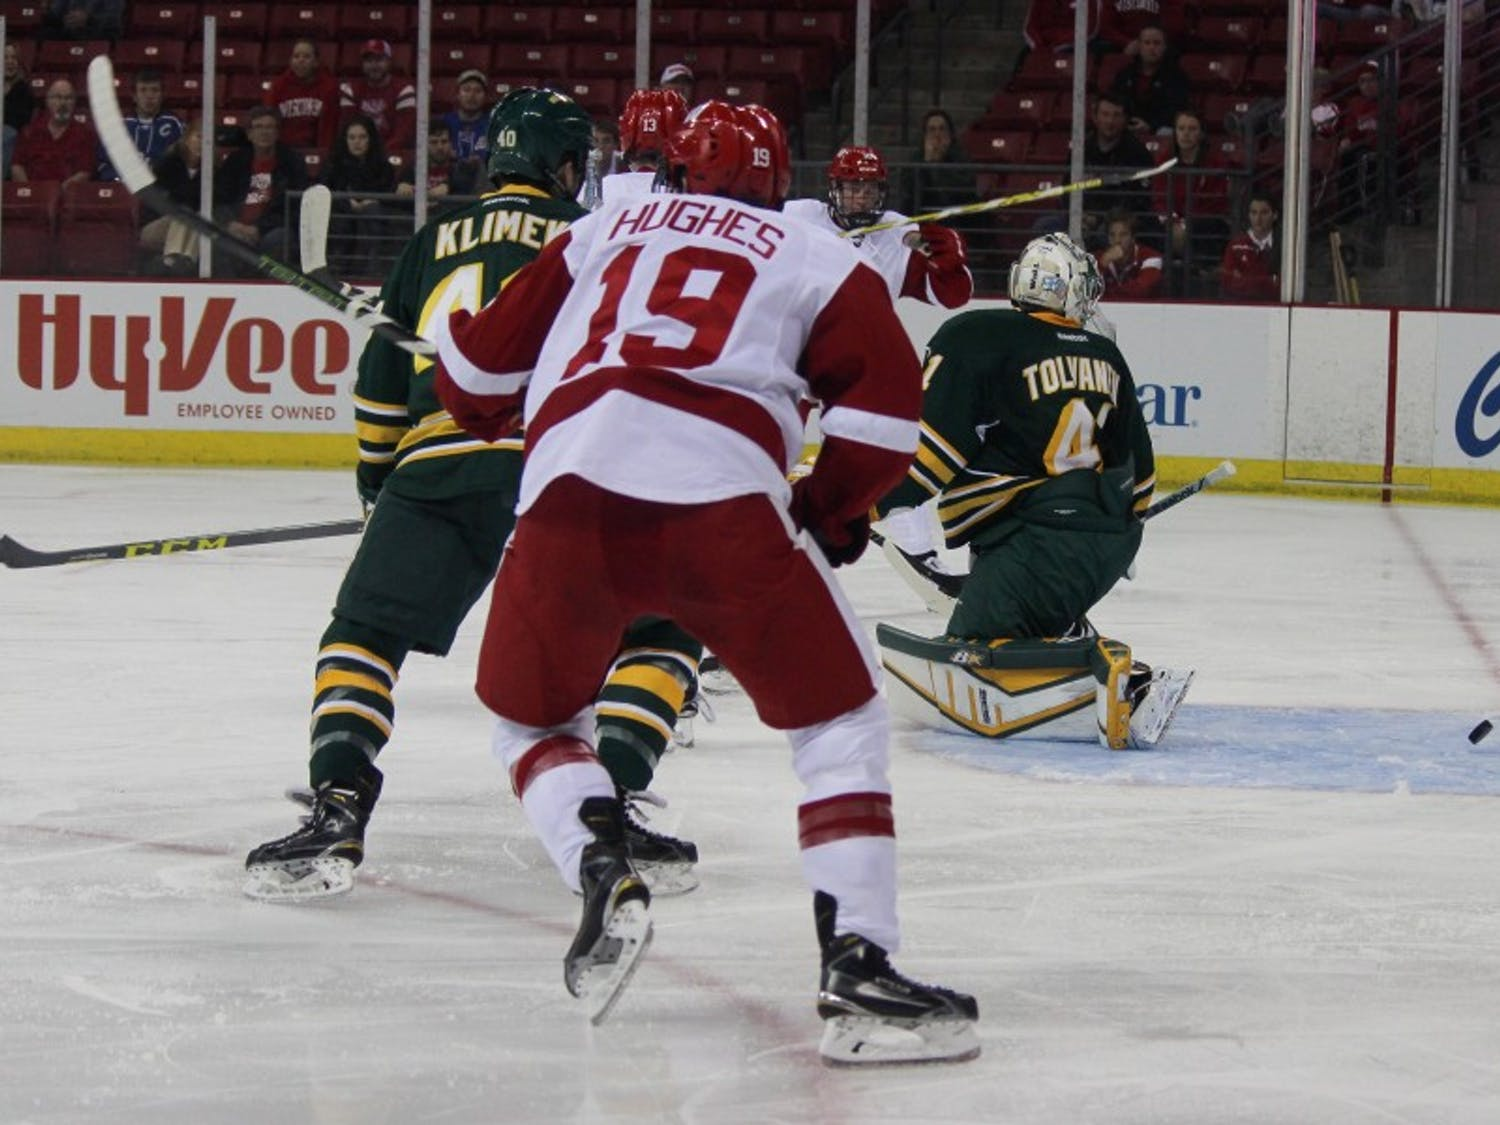 Cameron Hughes netted a game-winner in overtime on one of the biggest stages in sports.